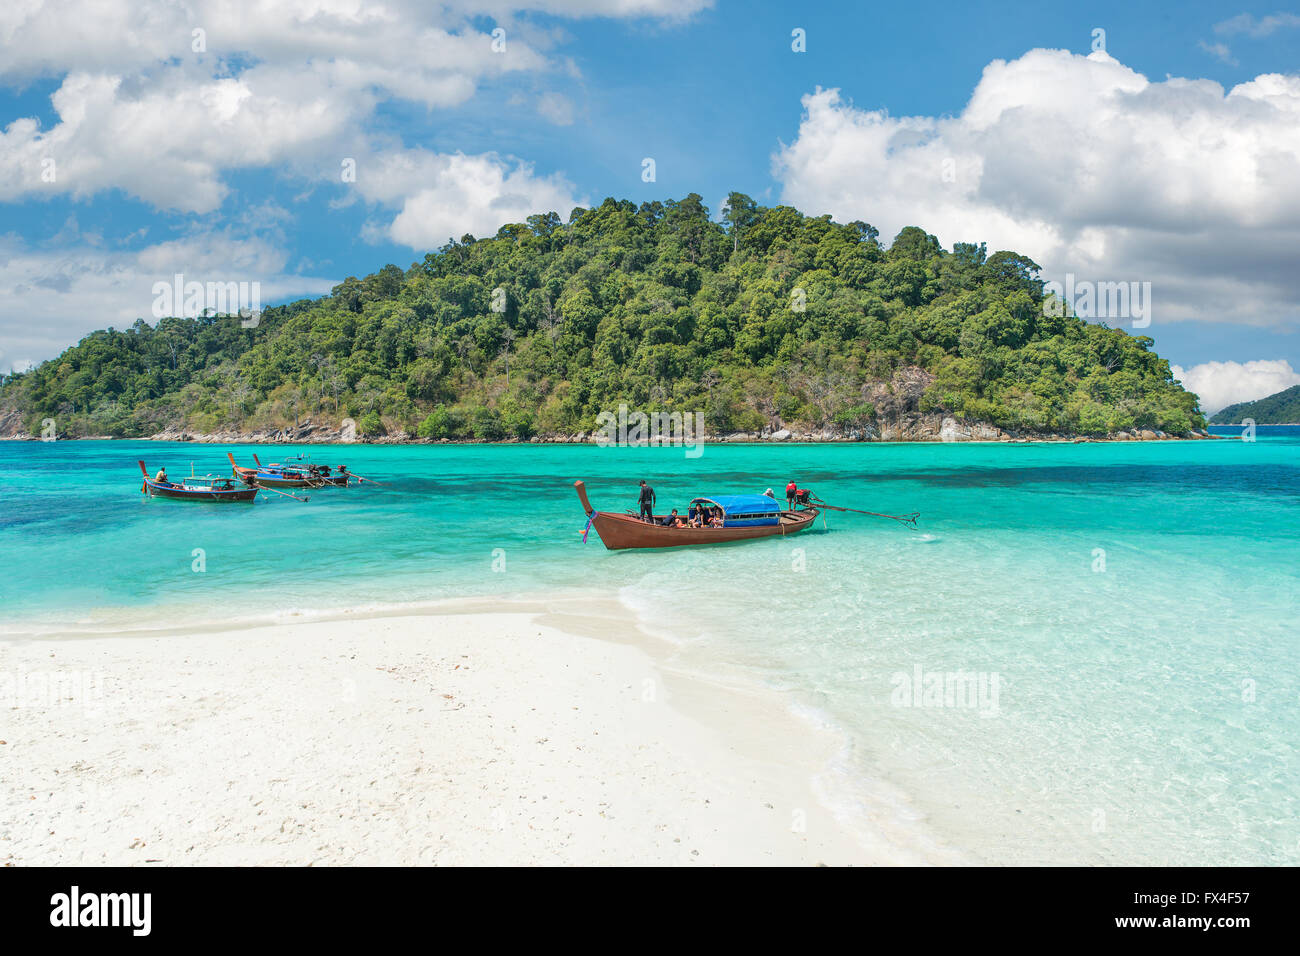 Summer, Travel, Vacation and Holiday concept - Longtale boats at the beautiful beach, Thailand - Stock Image